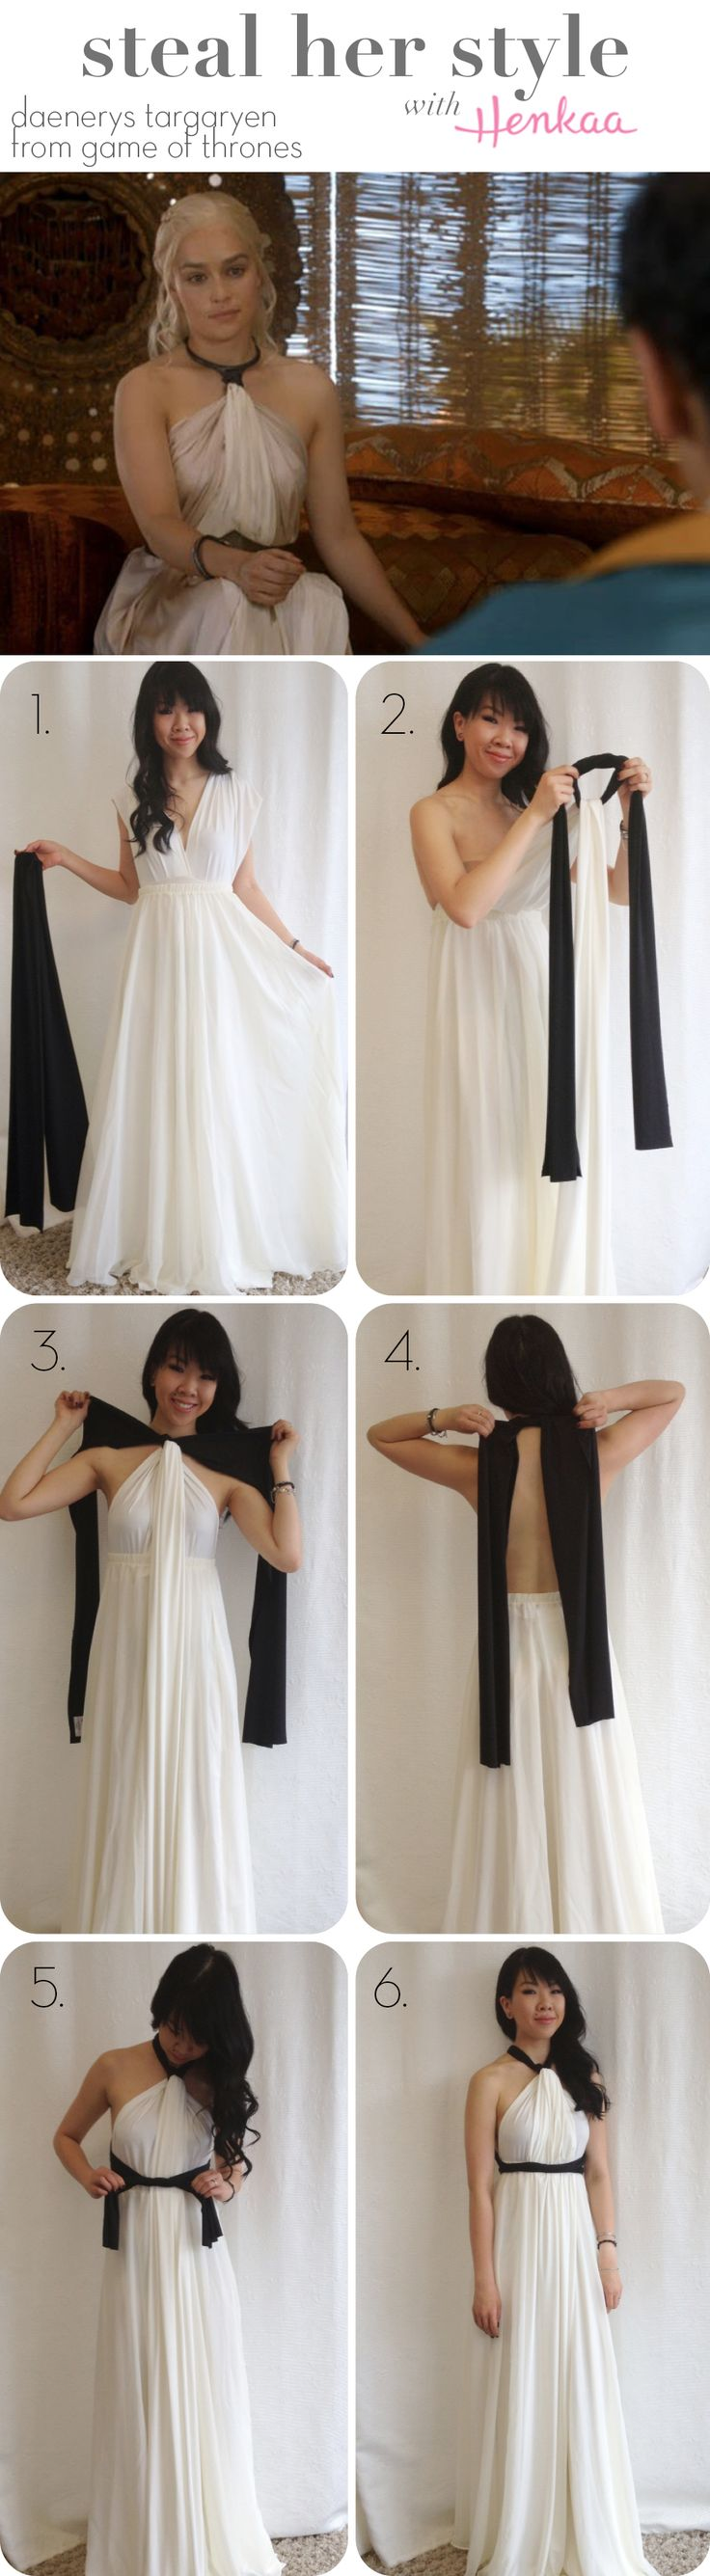 Steal Daenerys Targaryen's (from Game of Thrones) Style with a convertible dress  sash!